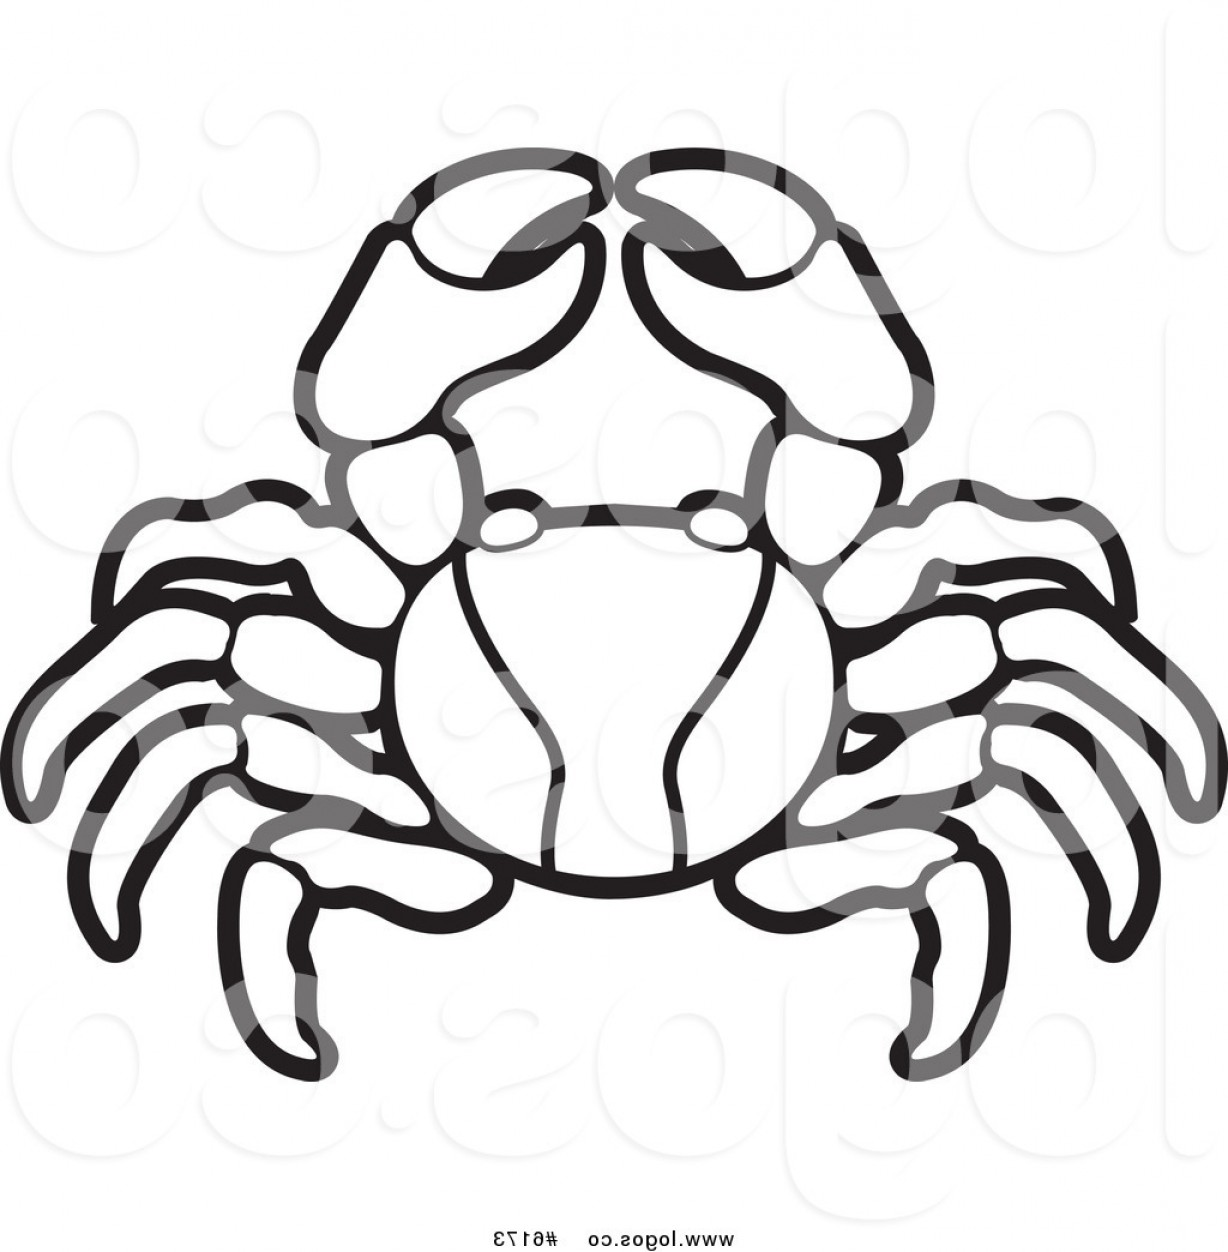 Crab Vector Black: Royalty Free Vector Of A Black And White Crab Logo By Lal Perera